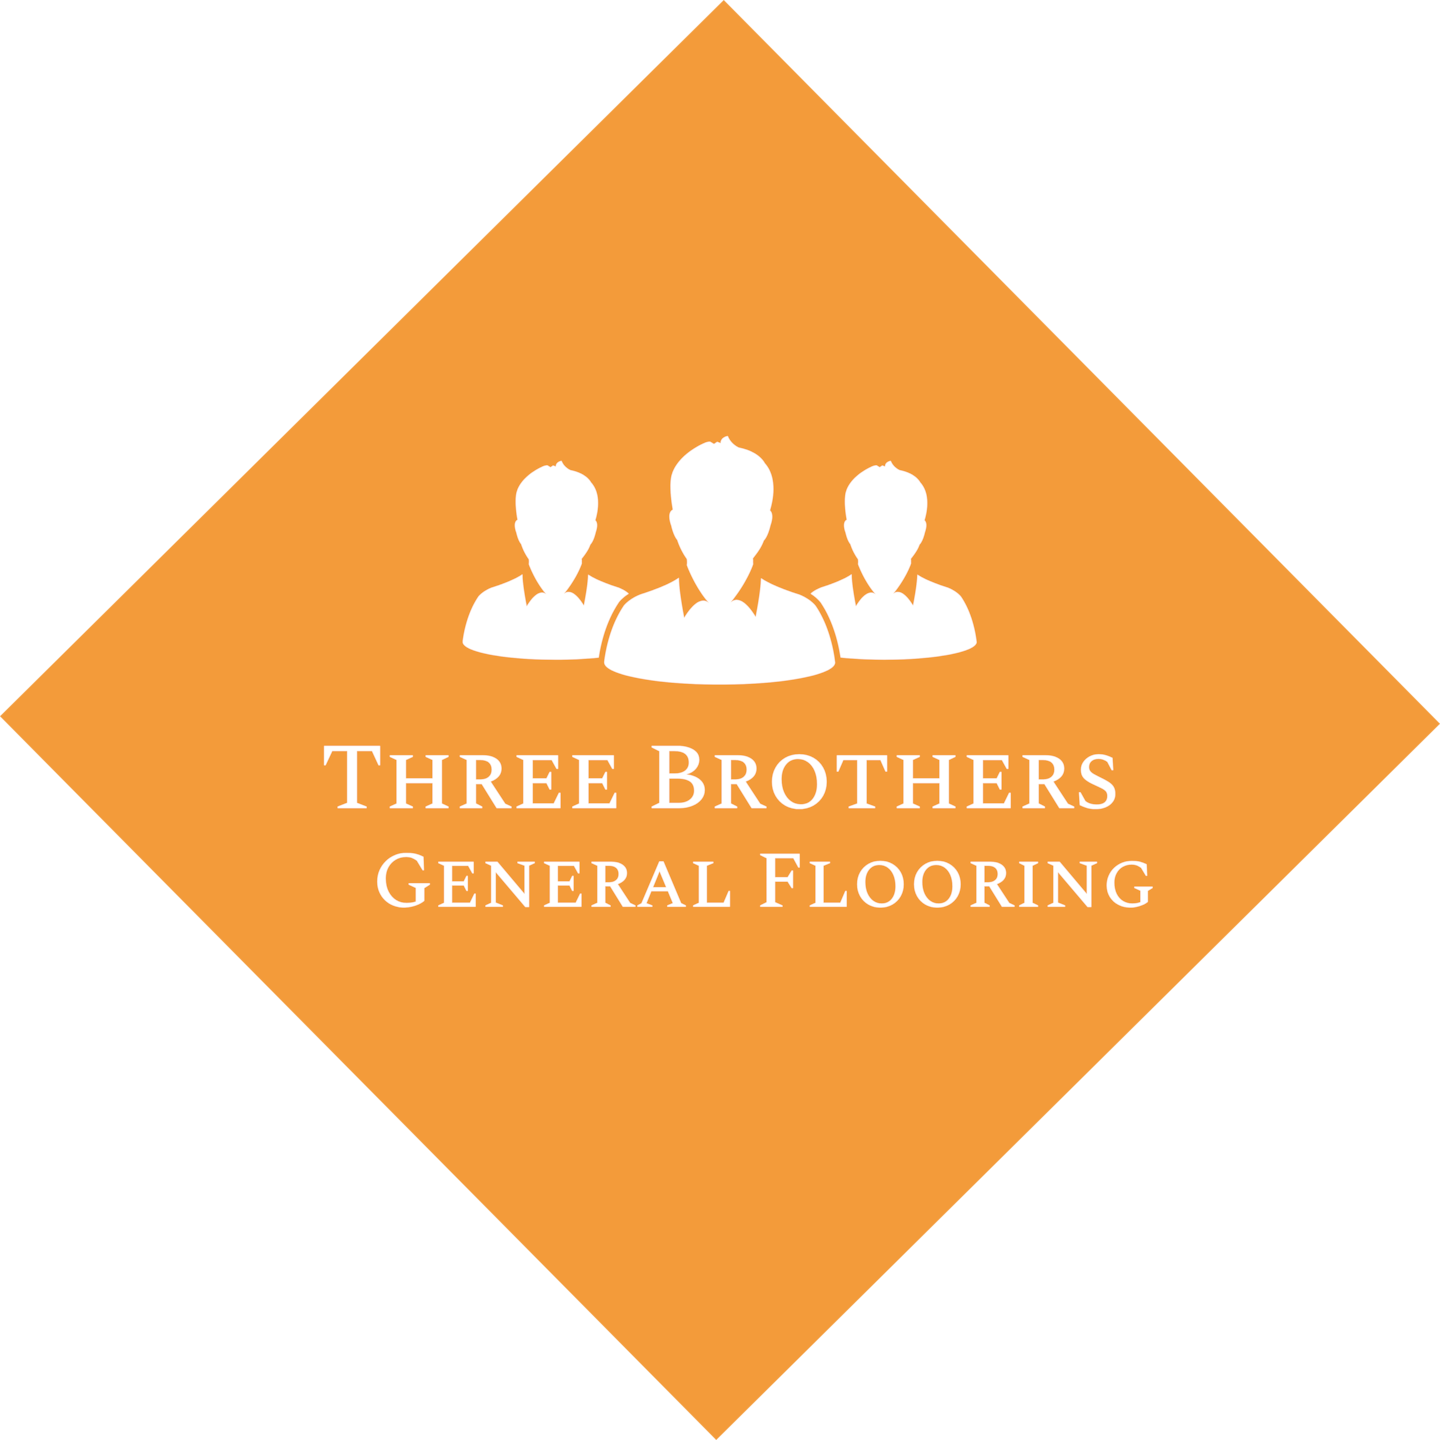 Three Brothers General Flooring